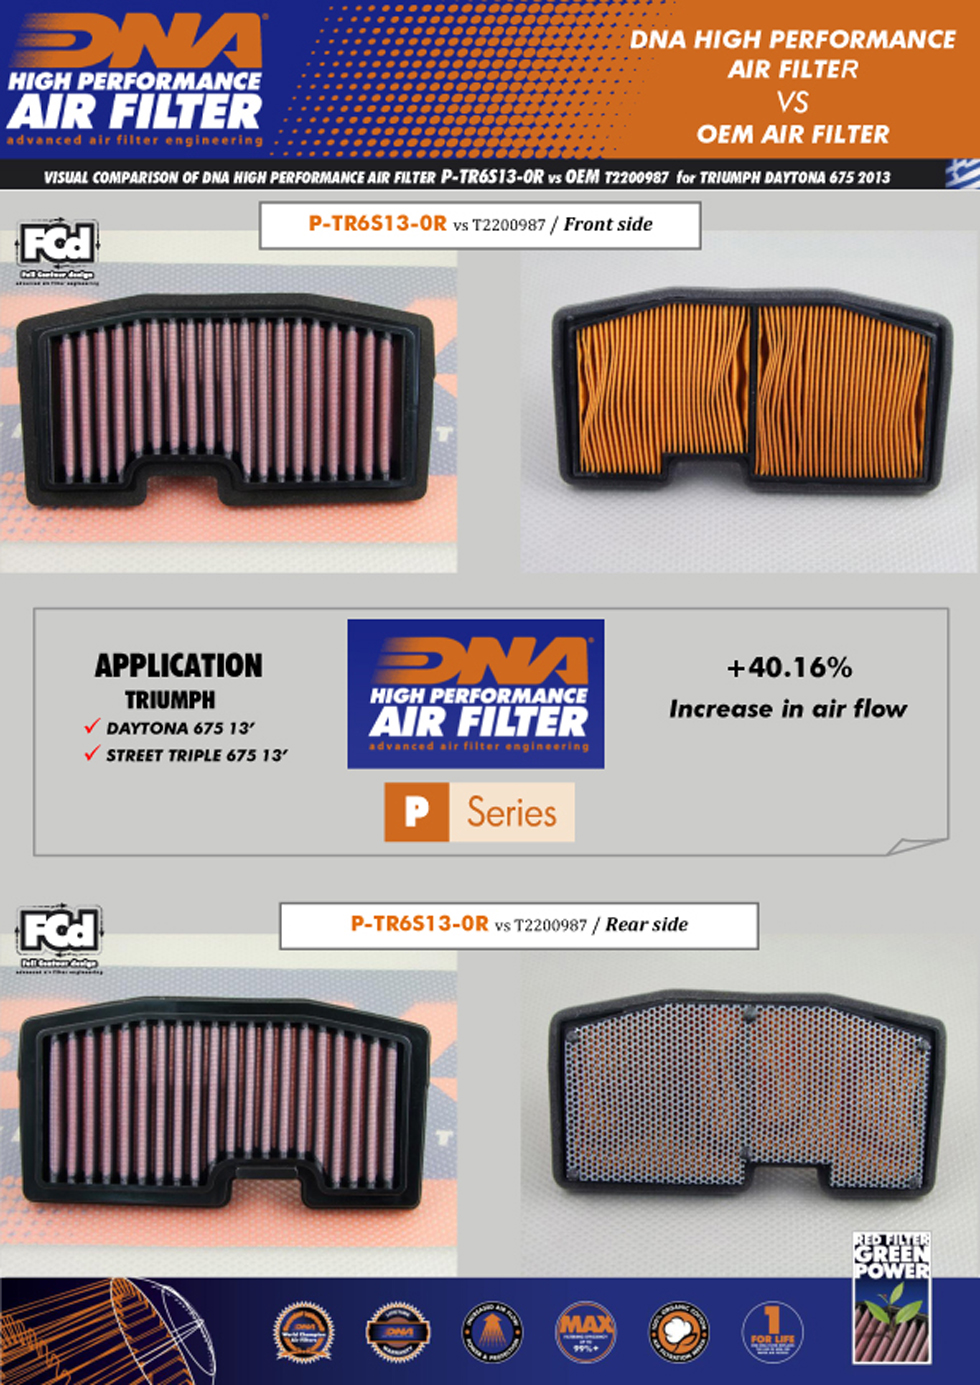 DNA air filters are btter then the stock OEM air filters from Triumph